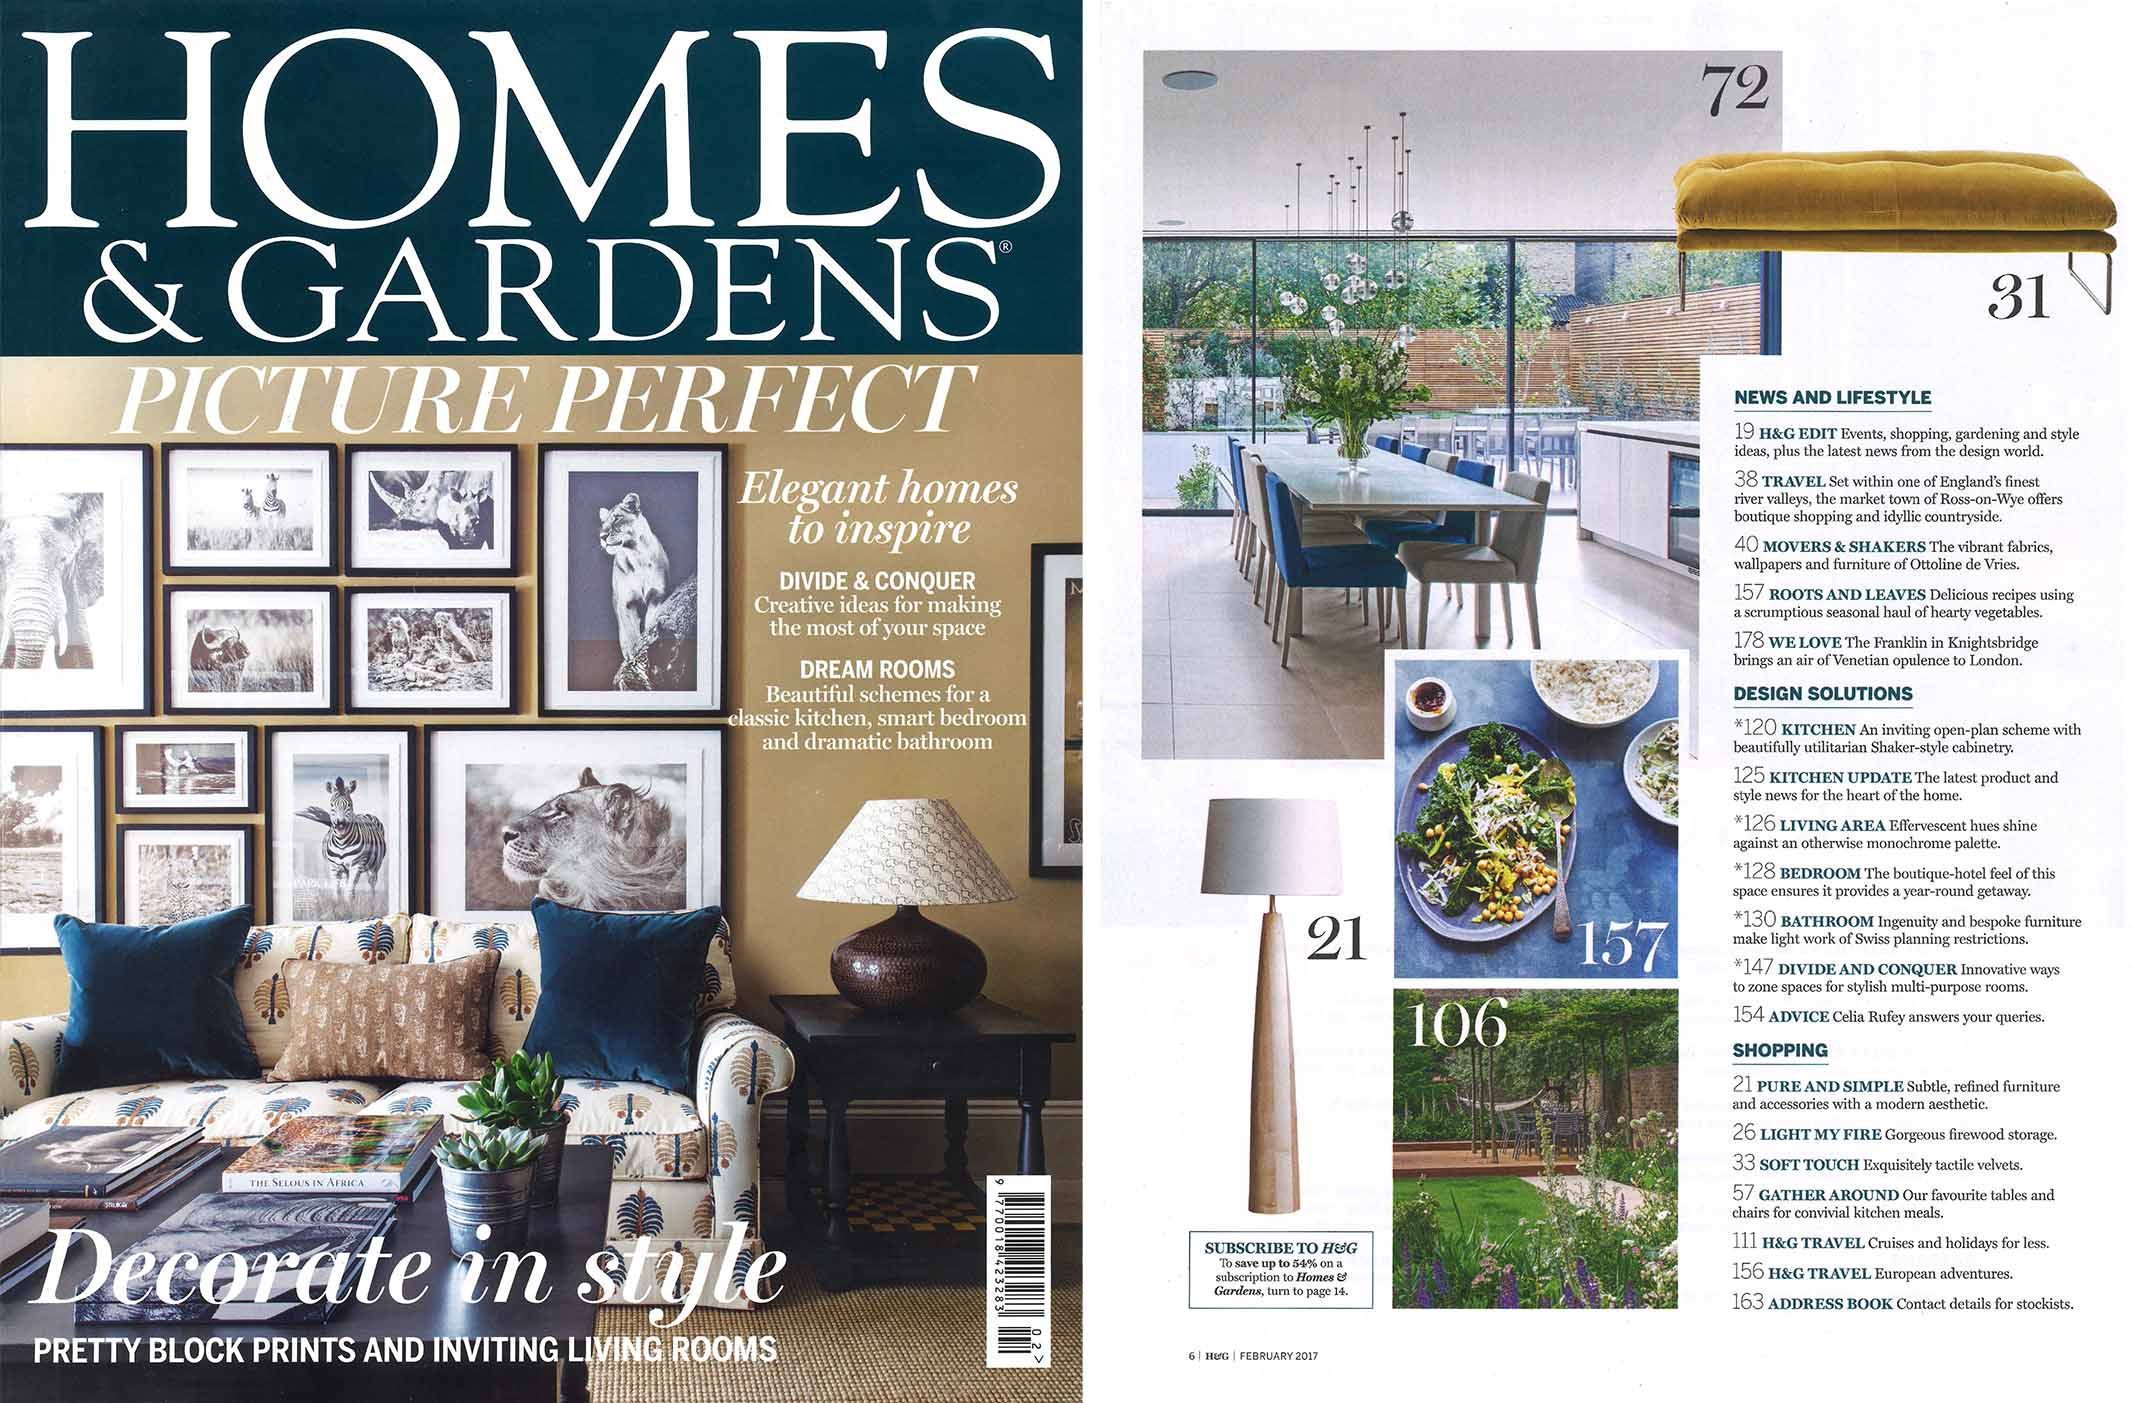 homes-and-gardens-p0-6